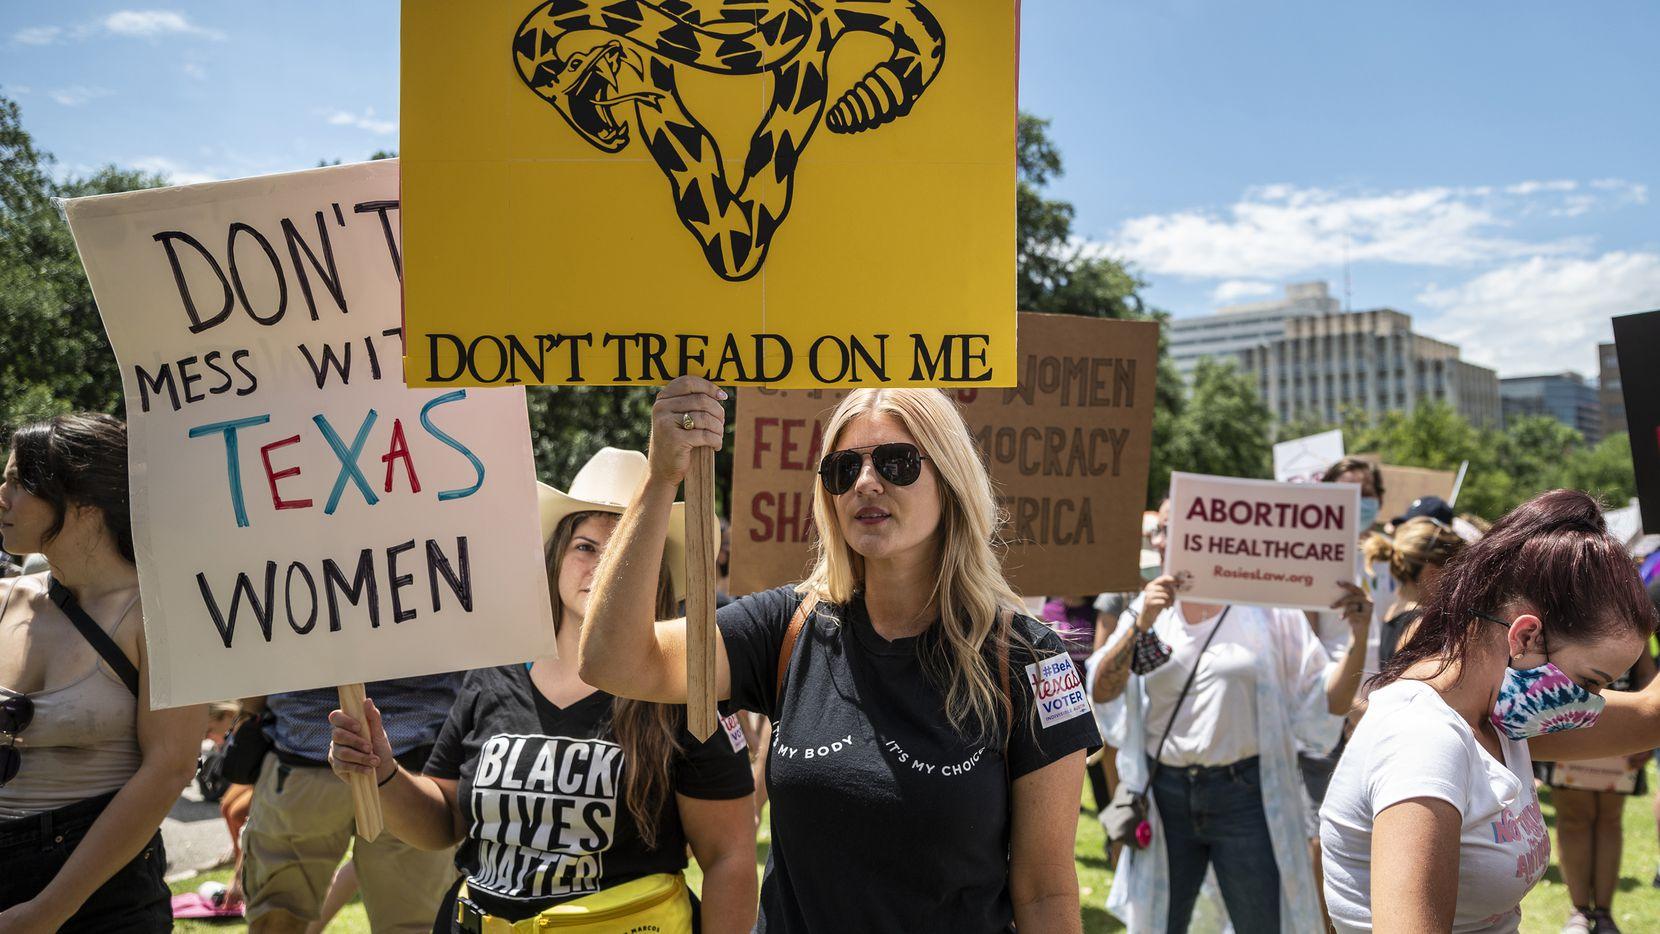 Thousands of protesters gathered outside the Texas Capitol in Austin in May to show their concern about restrictive abortion legislation that was headed to Gov. Greg Abbott's office. The law, which bans almost all abortions in the state, went into effect Sept. 1.